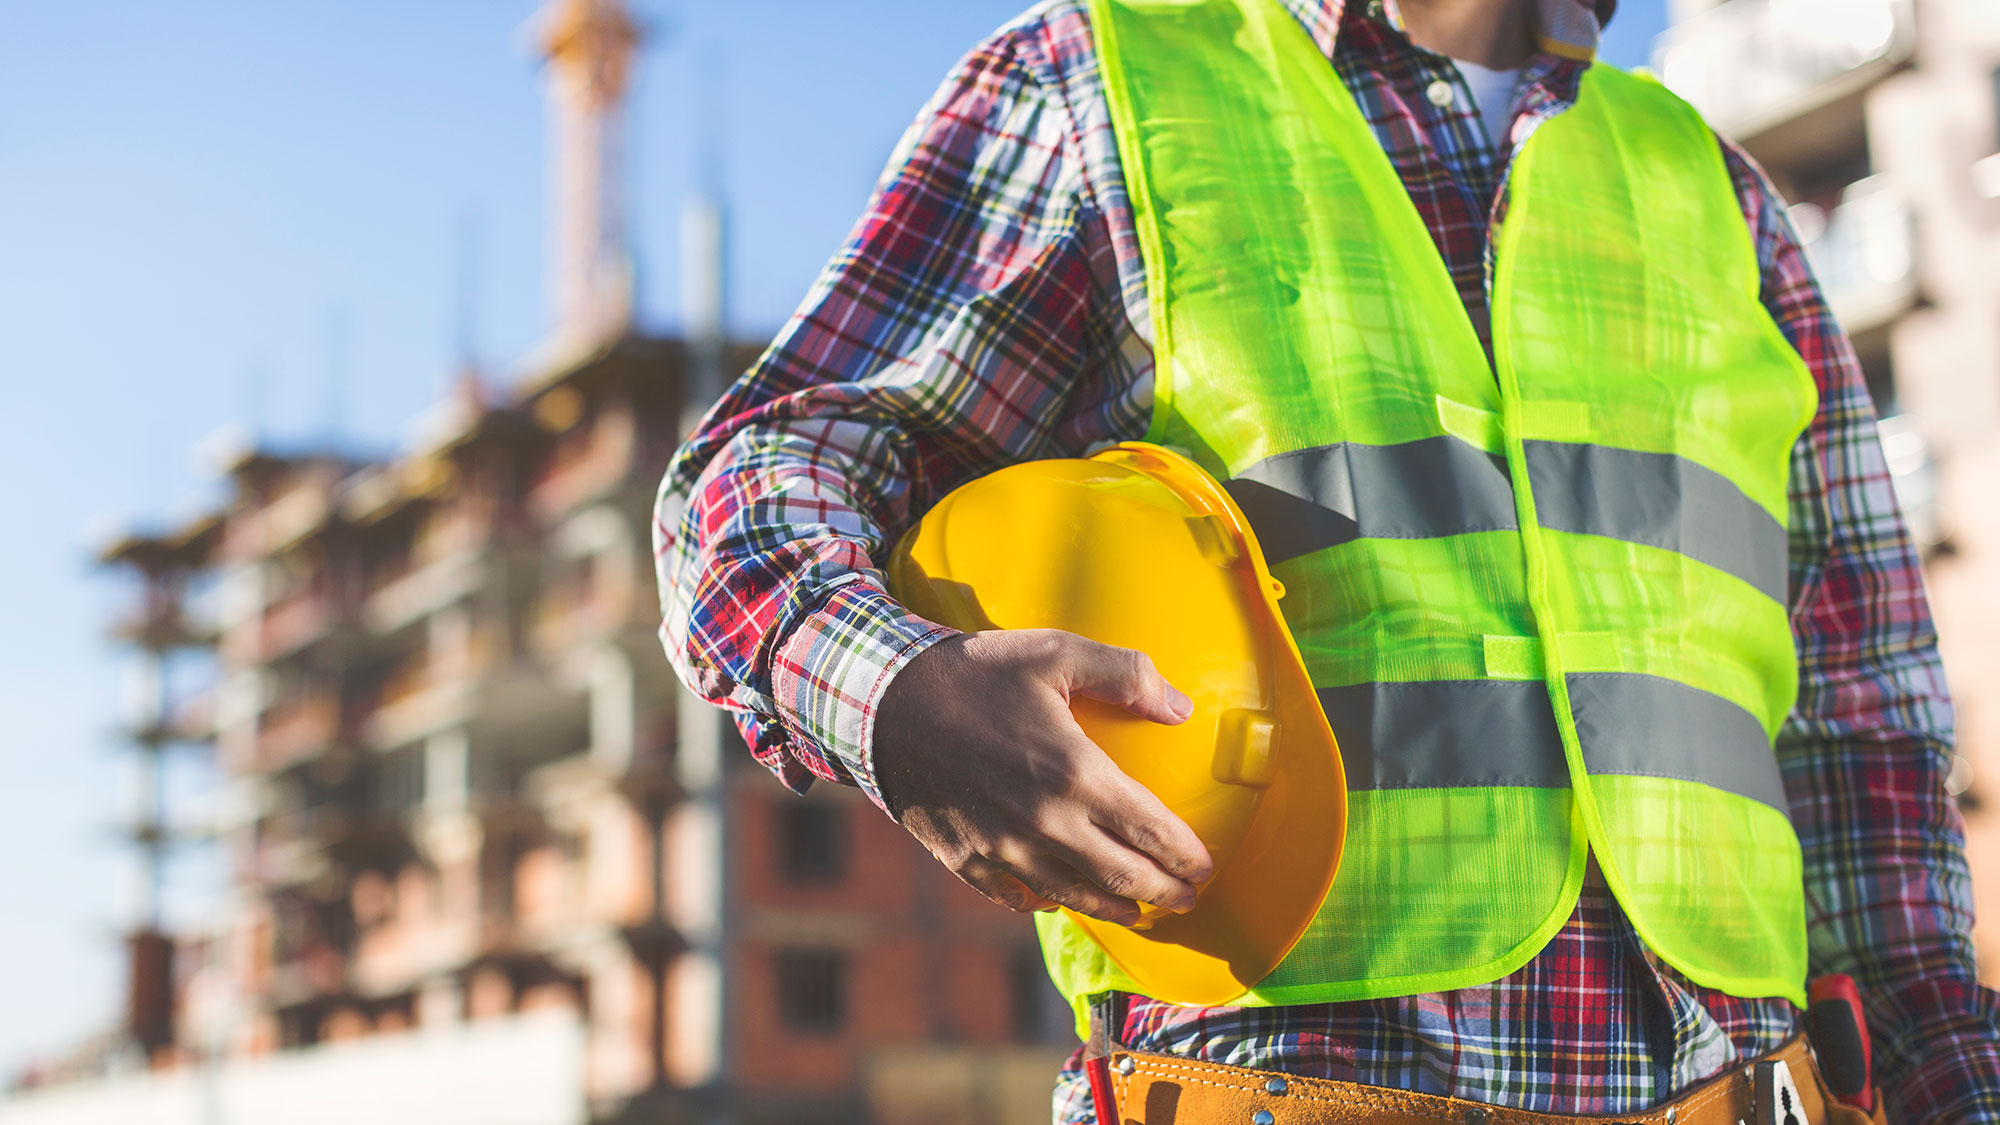 6 Construction Personal Protective Equipment Tips and Tricks